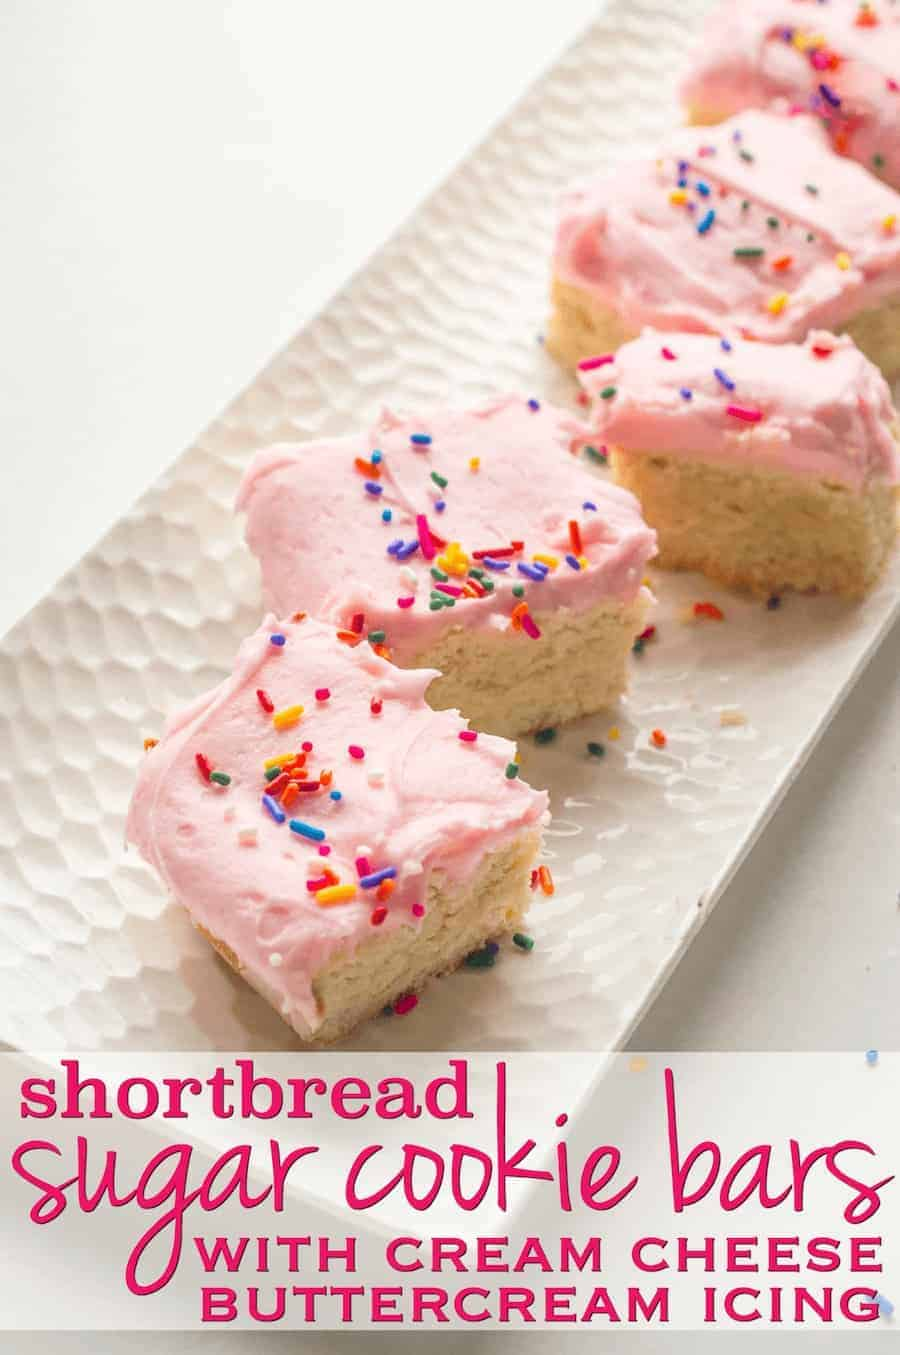 Shortbread sugar cookie bars recipe